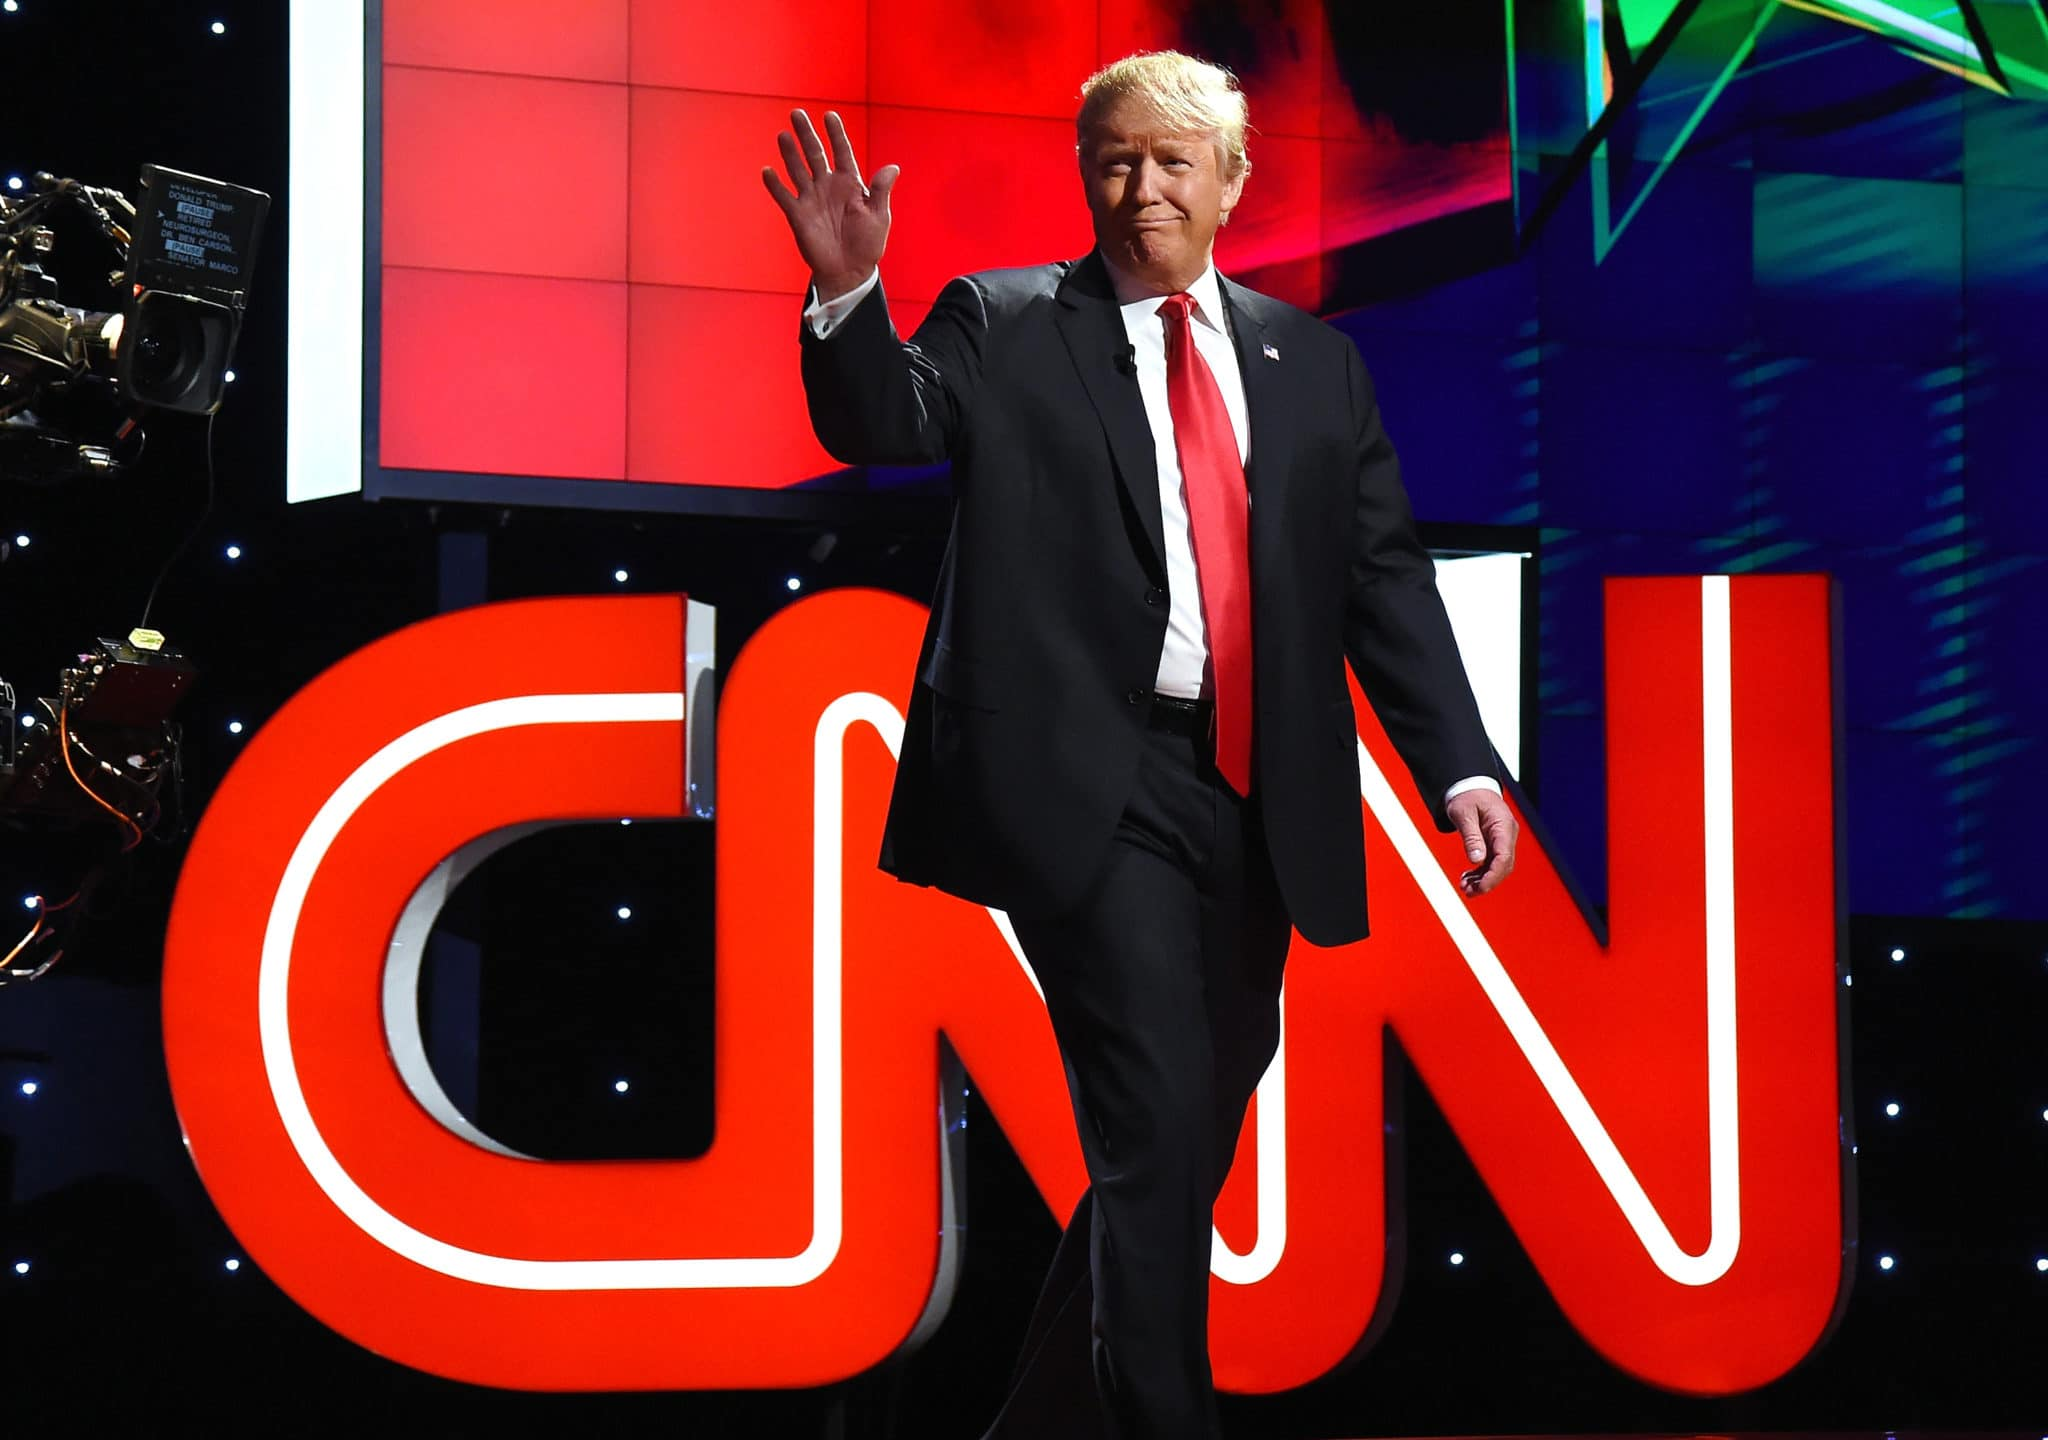 CNN Bleeds 45% of Audience in Just Five Weeks